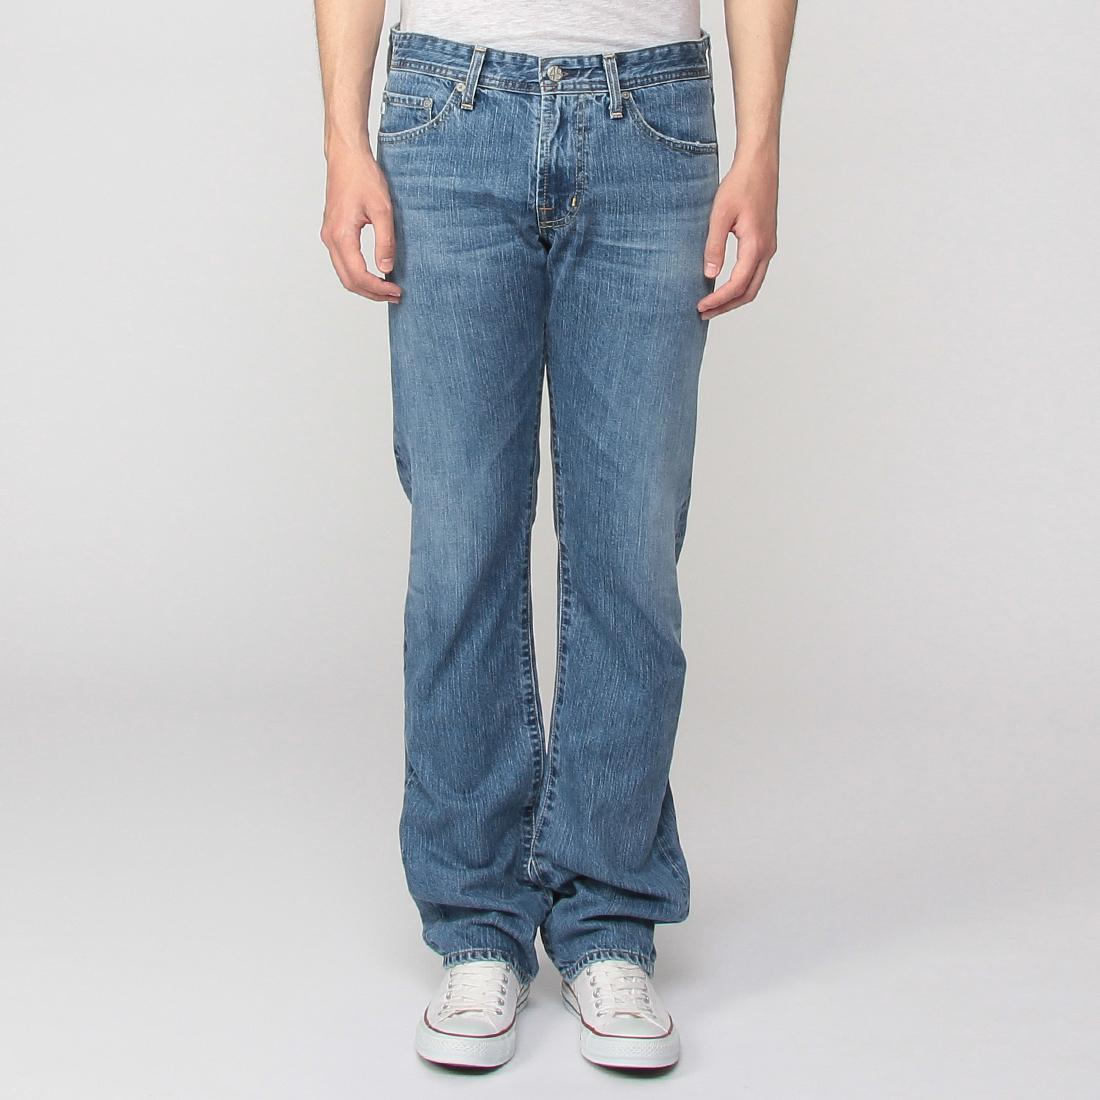 201605_mens-denim-5_002